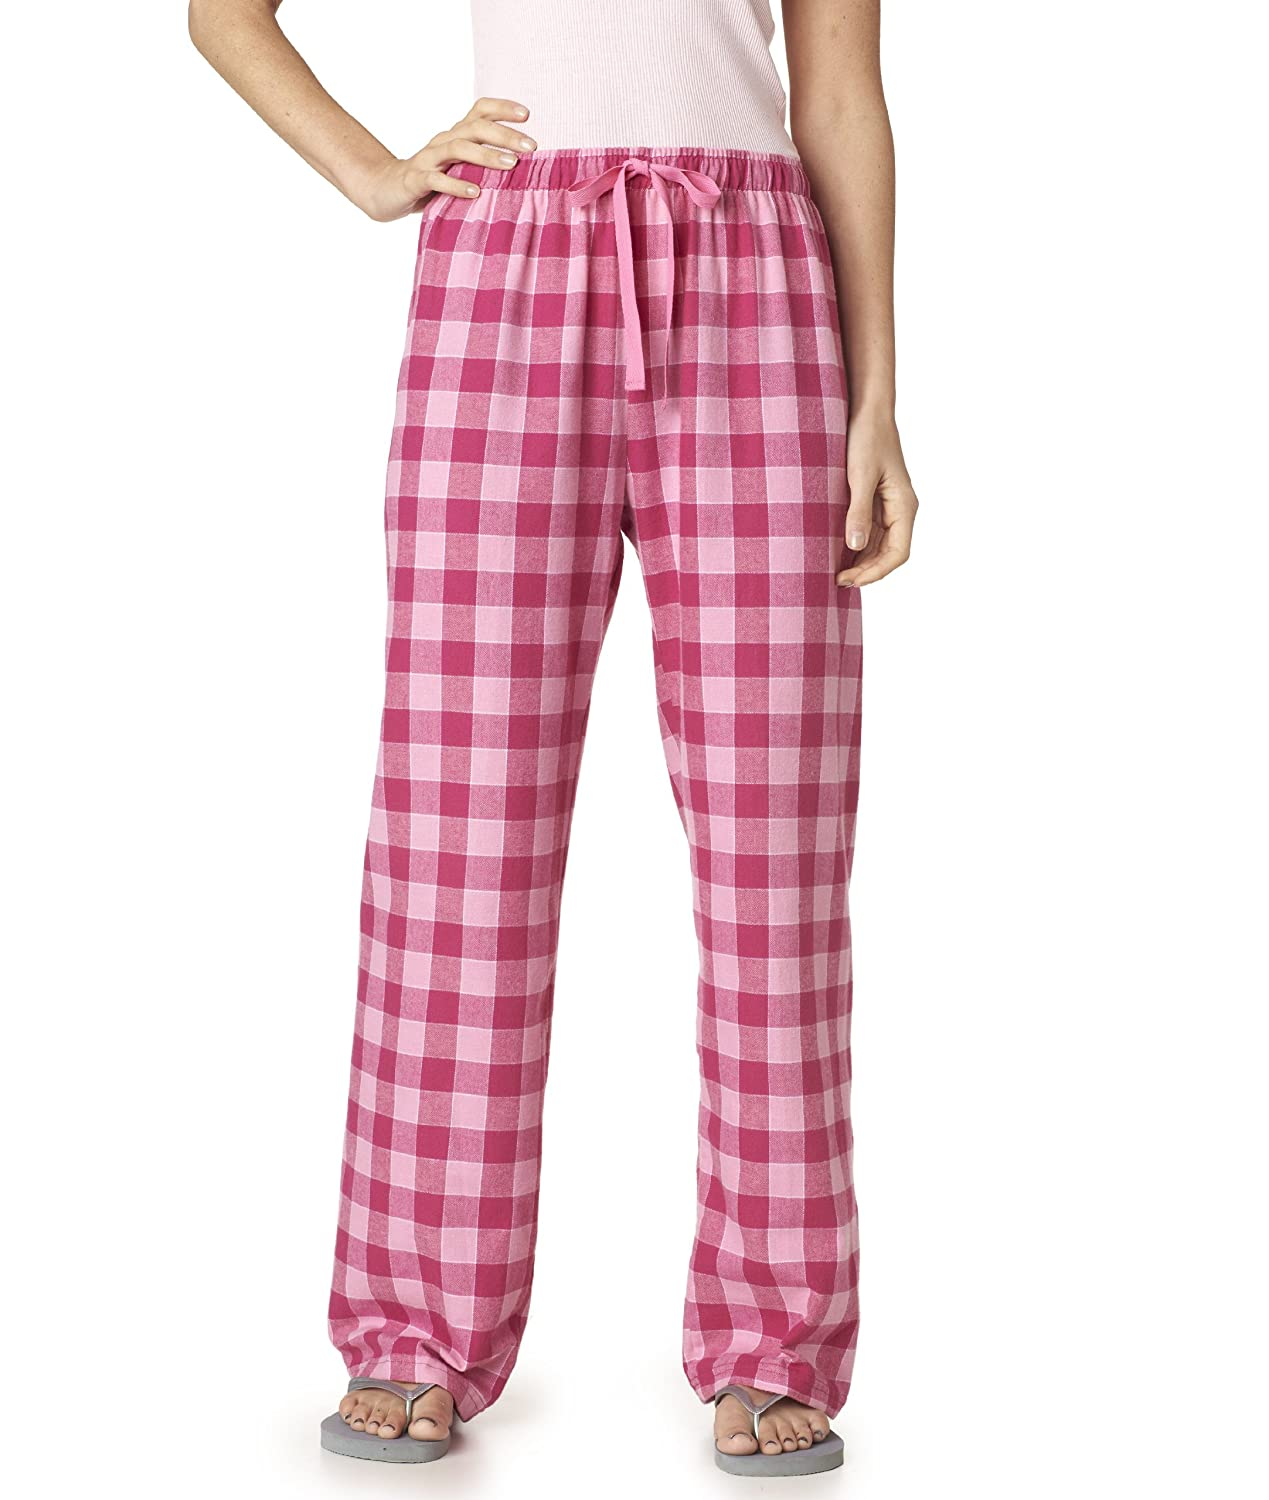 Made to Order Purple, Yellow and Pink Bicycles Unisex Adult Flannel Pajama Pants